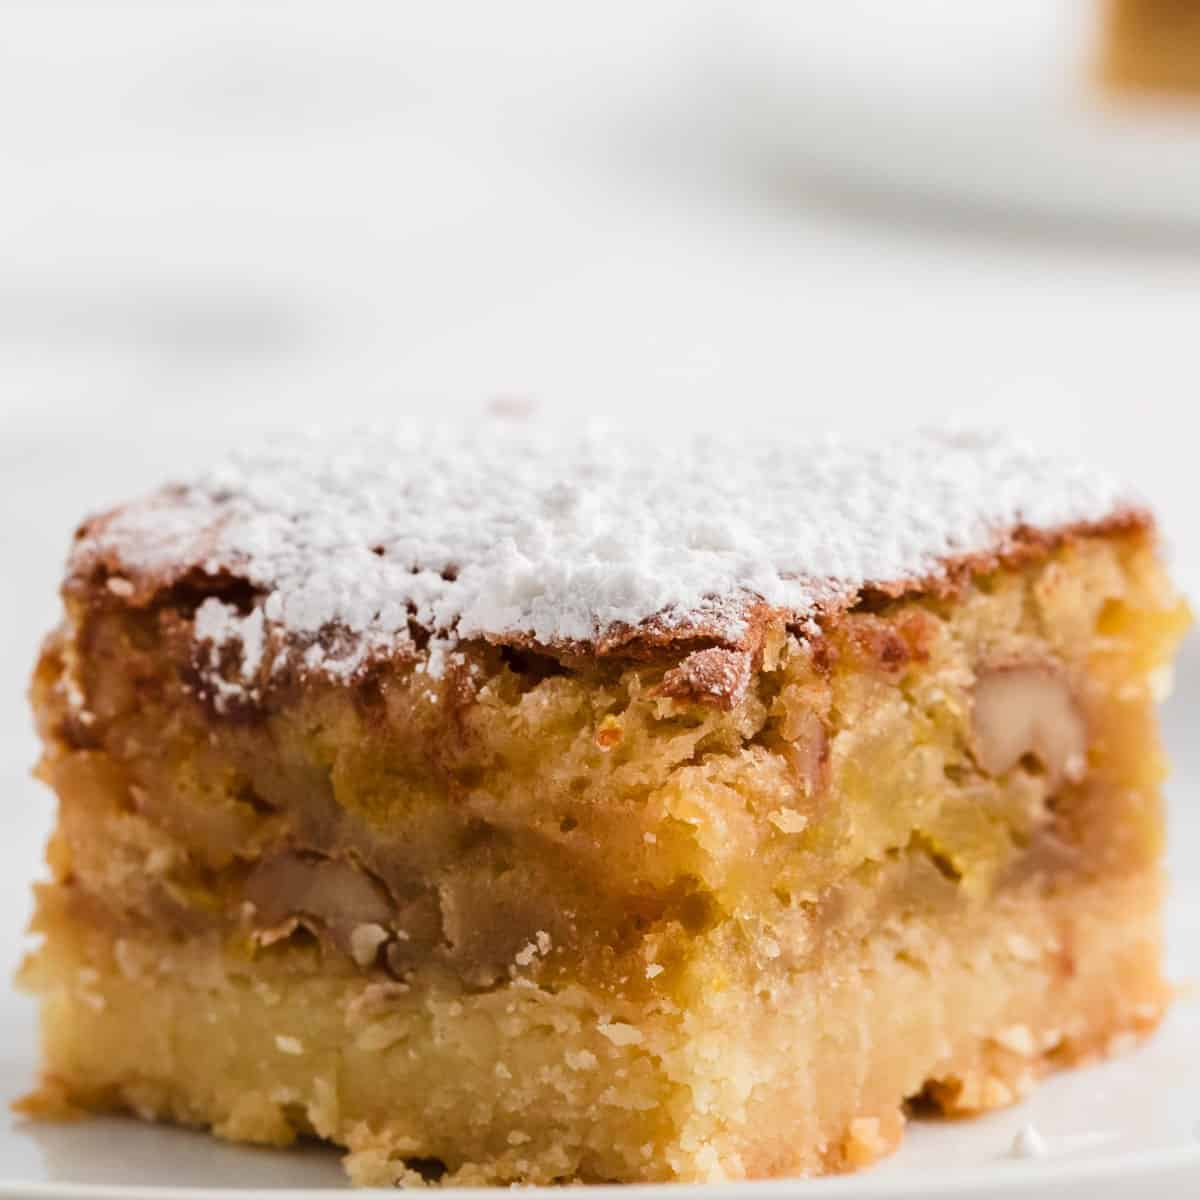 a slice of freshly baked apricot bars dusted with powdered sugar